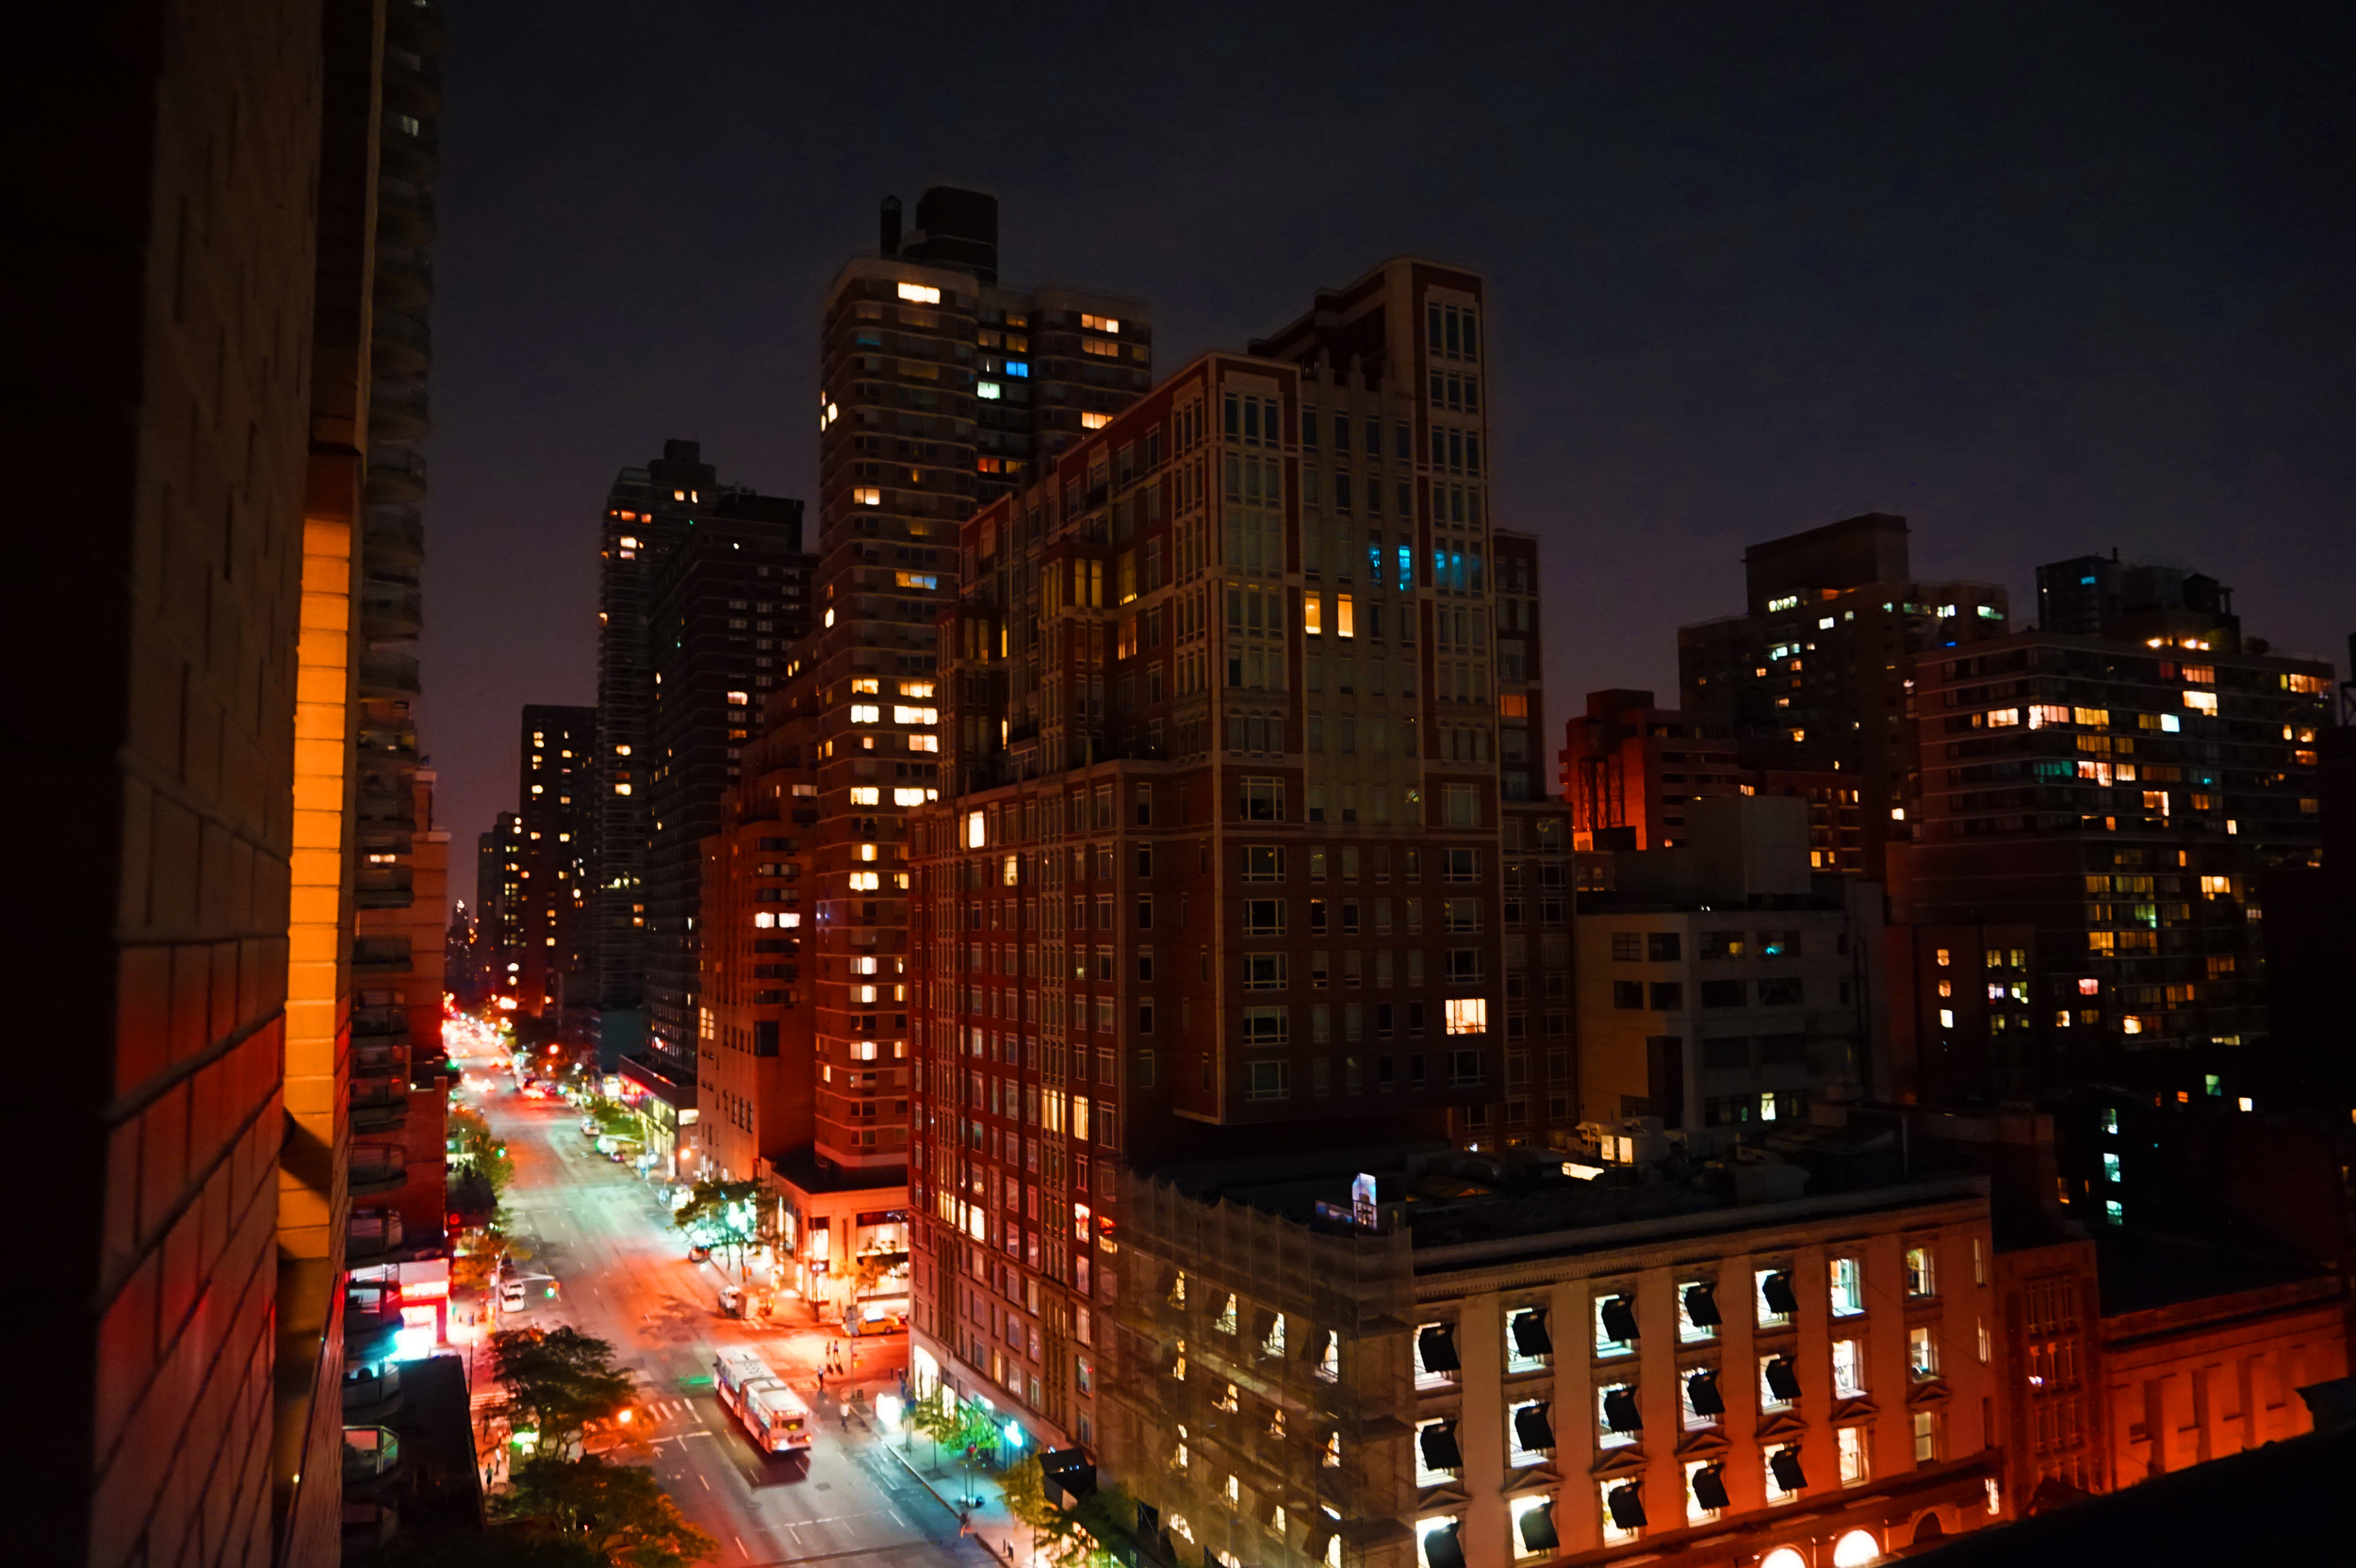 Lexington Avenue at night